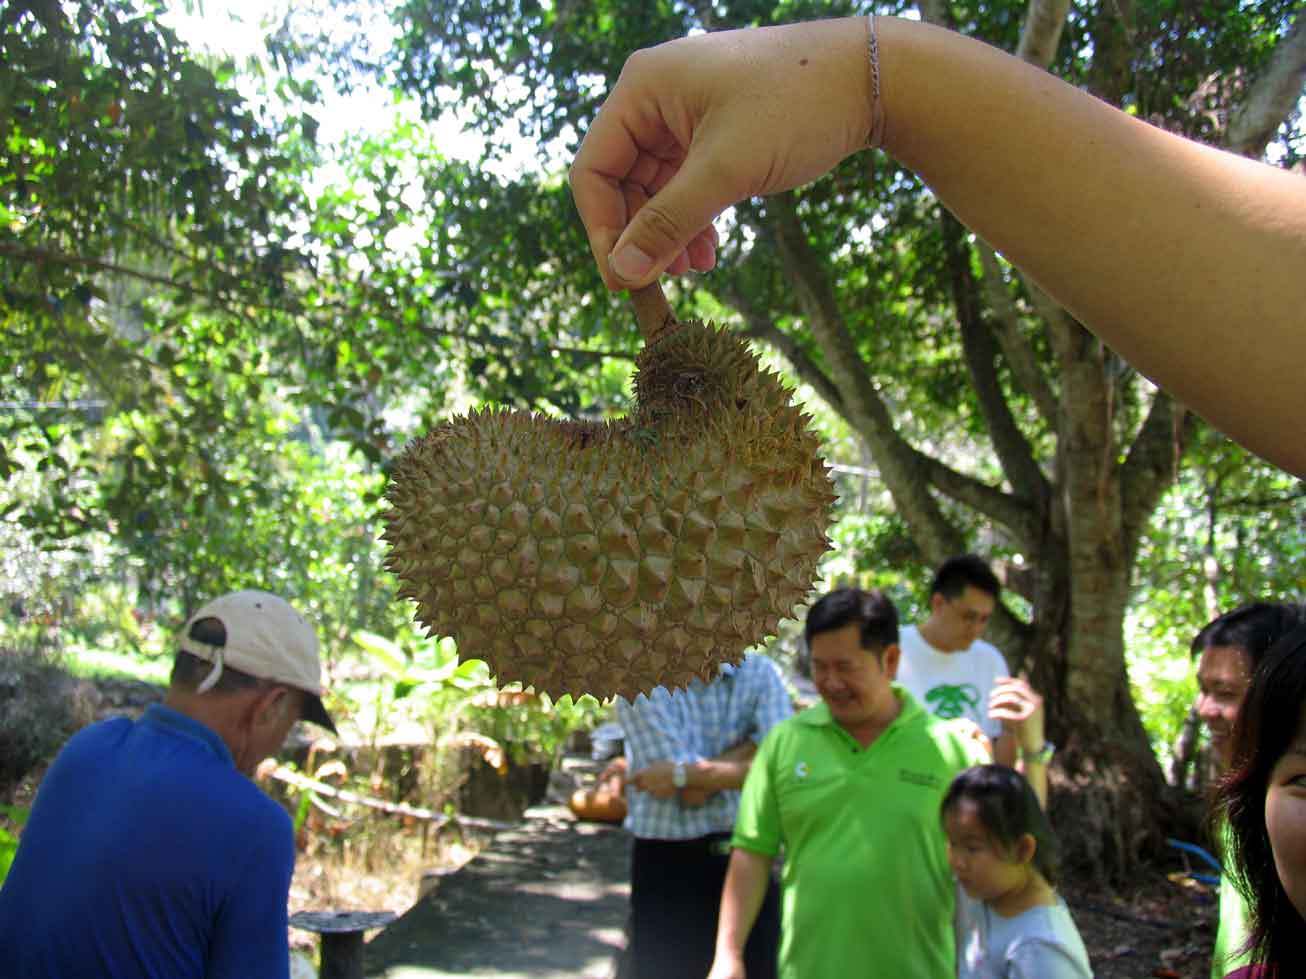 Unique shaped durian